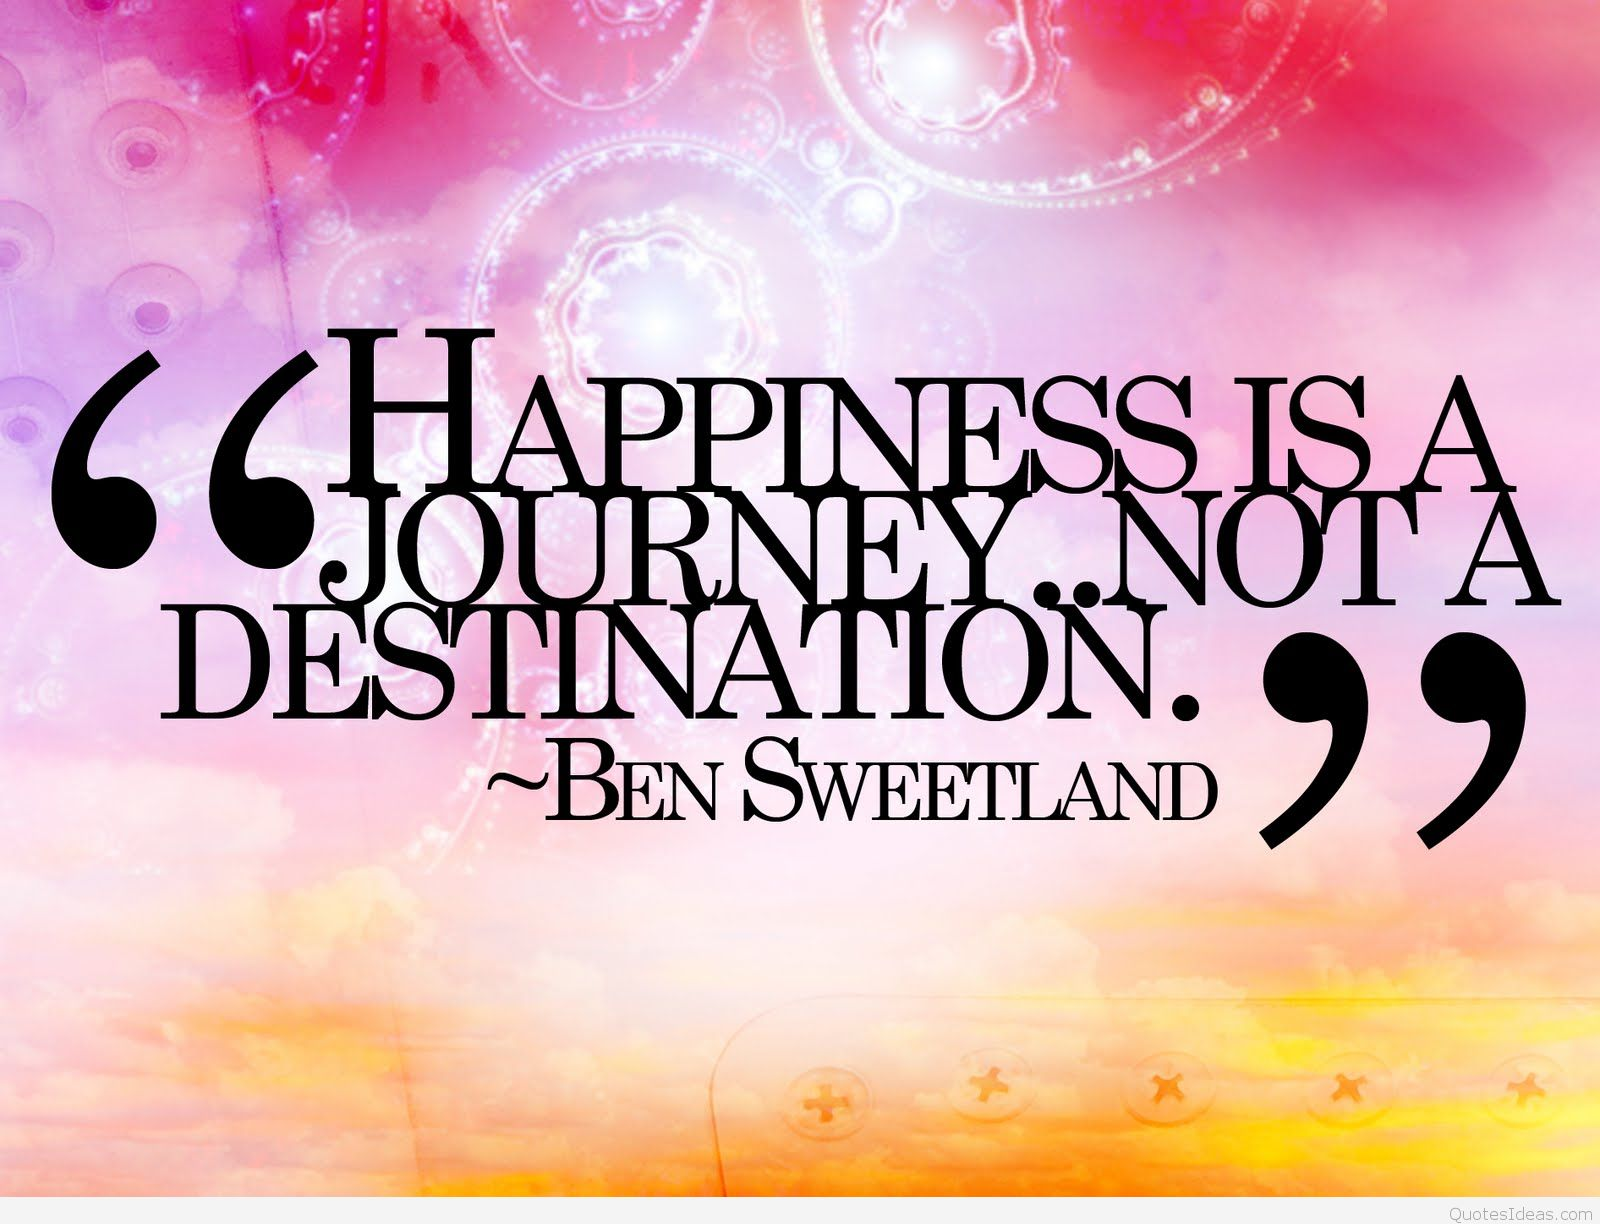 Short Quotes About Happiness Cool Thoughts Life And - Happiness Short Inspiring Quotes - HD Wallpaper